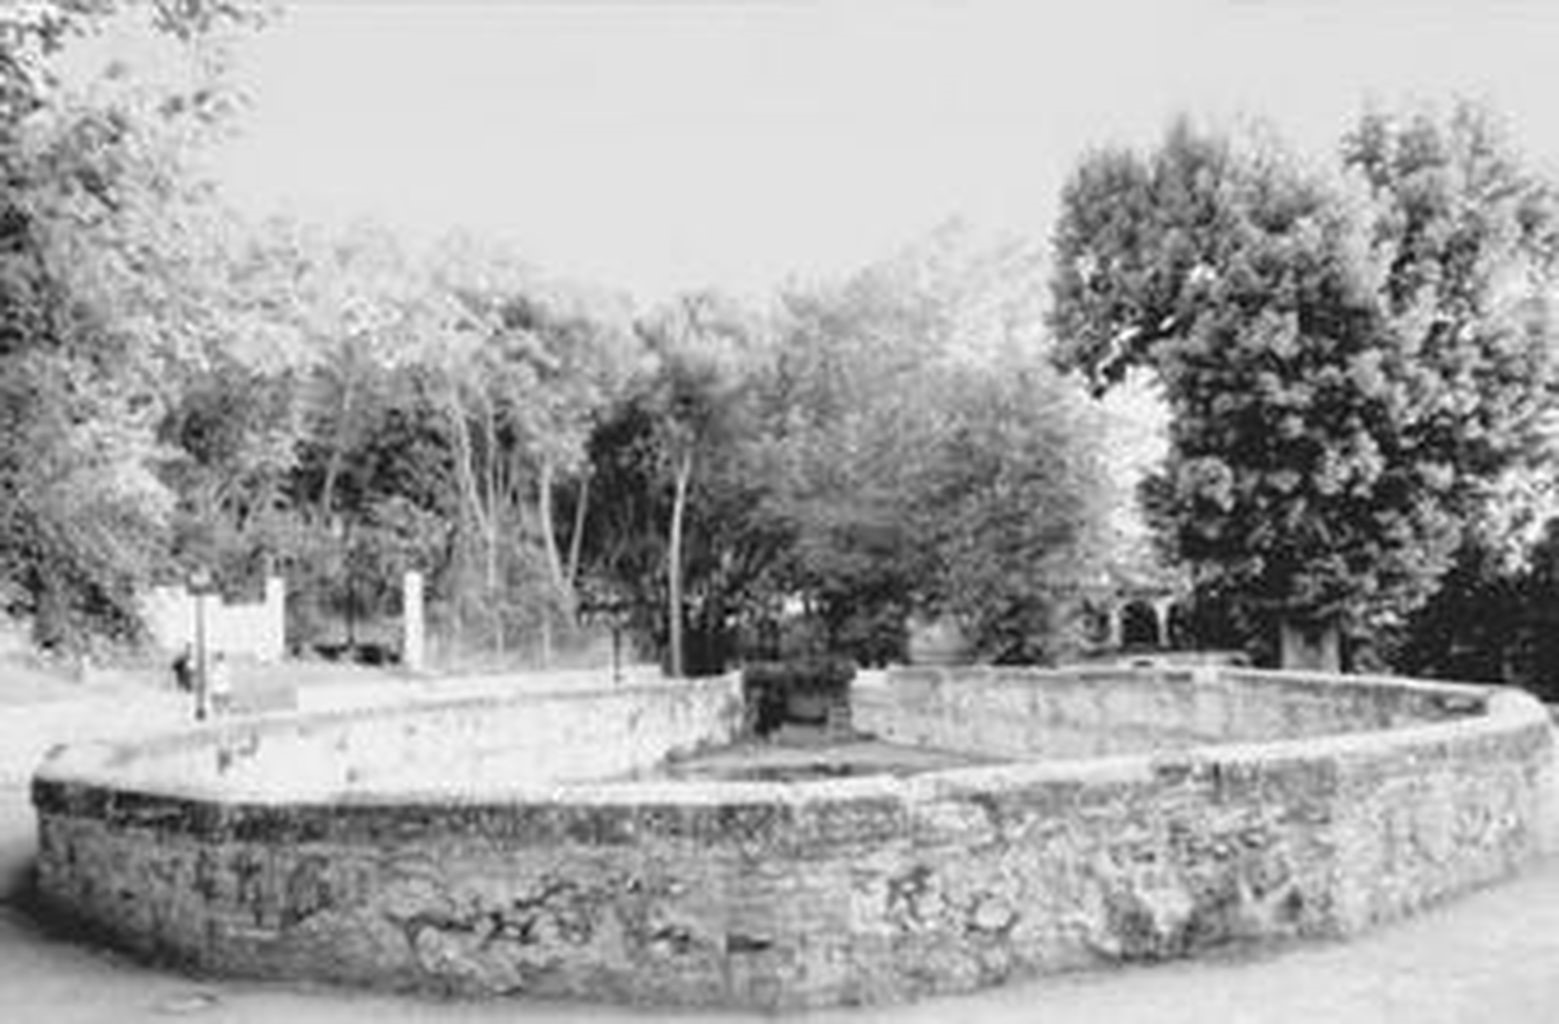 Photograph of the Aynadamar Fountain or the Fountain of Tears from the period.